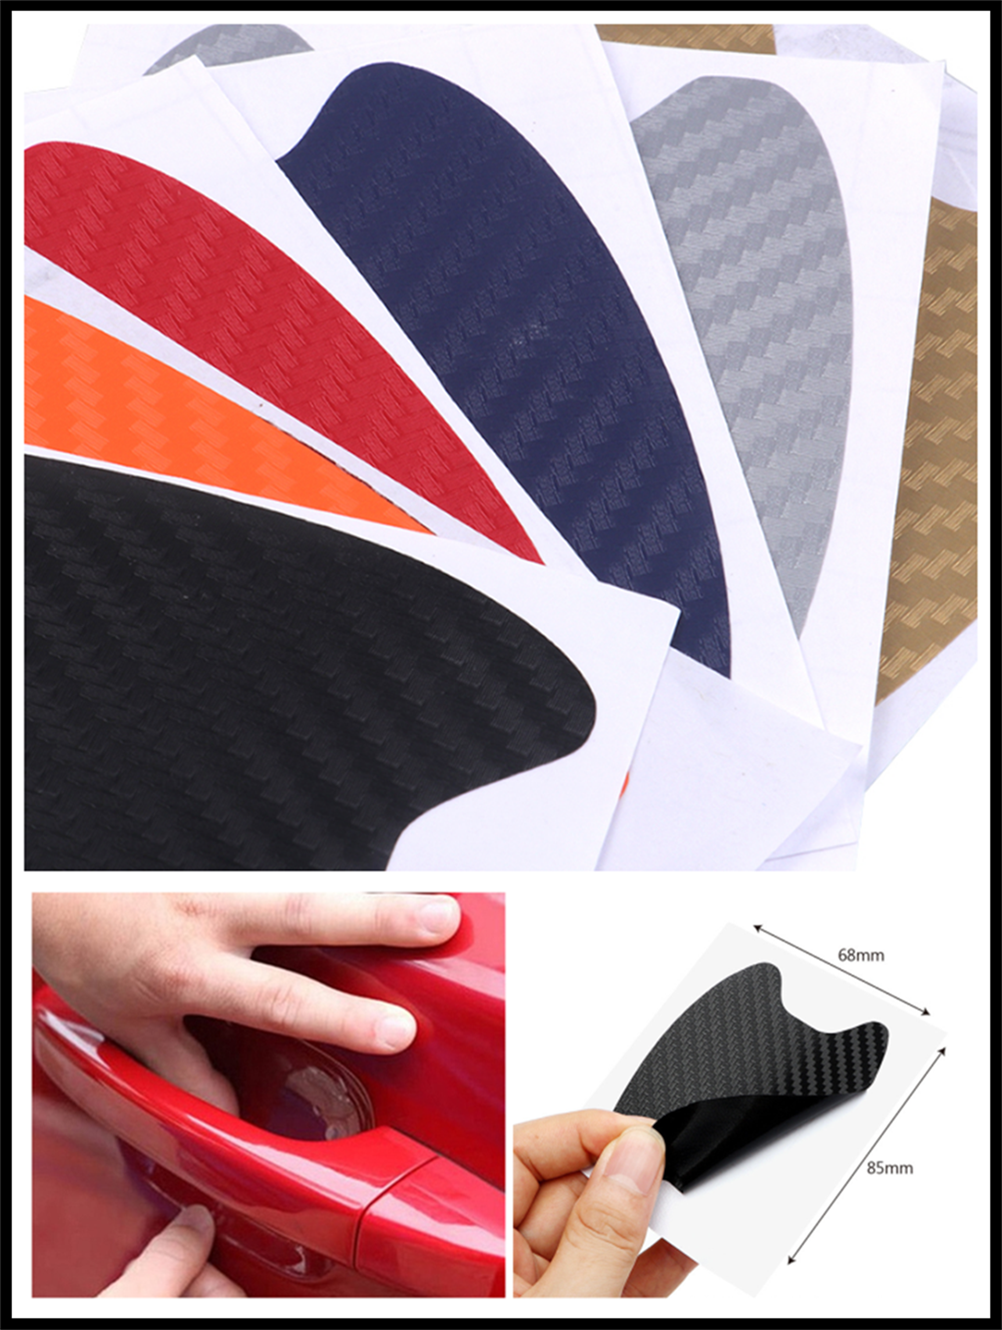 4pcs car accessories 3D carbon fiber <font><b>door</b></font> <font><b>handle</b></font> wrist scratch stickers for <font><b>Ford</b></font> <font><b>Focus</b></font> MK2 MK3 MK4 kuga Escape Fiesta Ecosport image